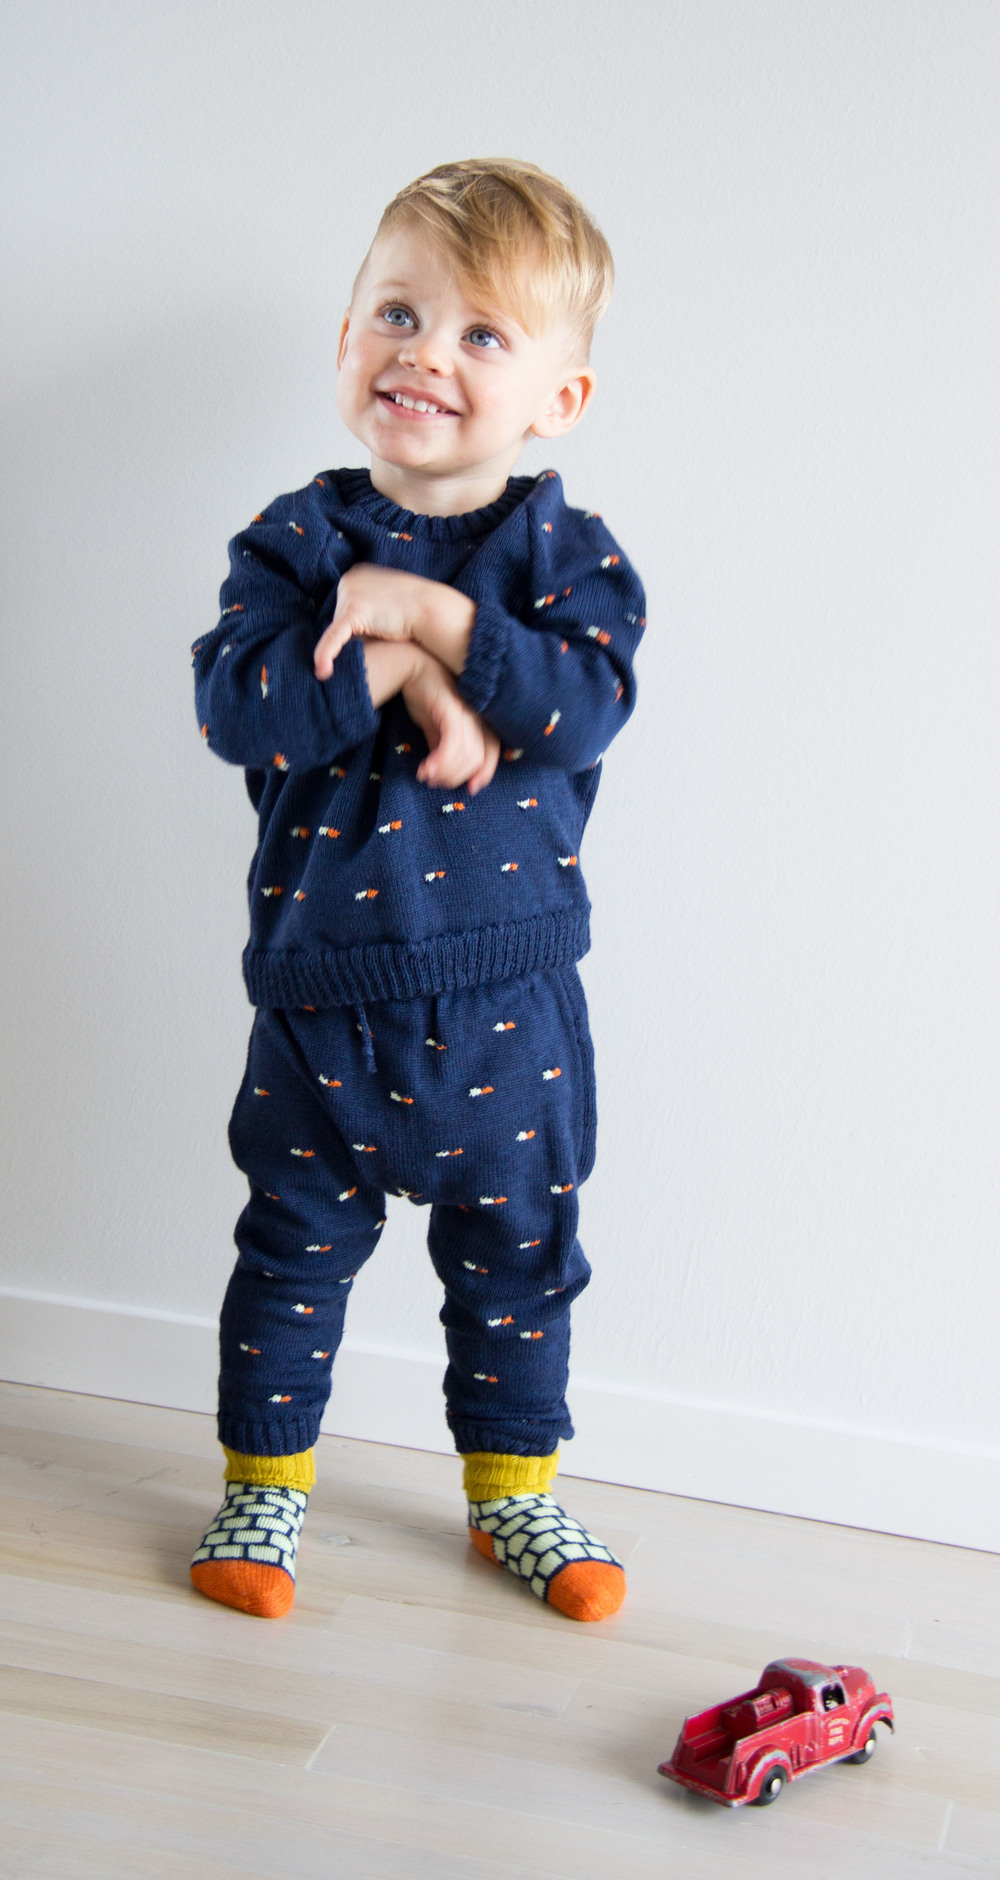 babyDEGEN Pillz Sweater | Pillz Pants | Blocky Socks